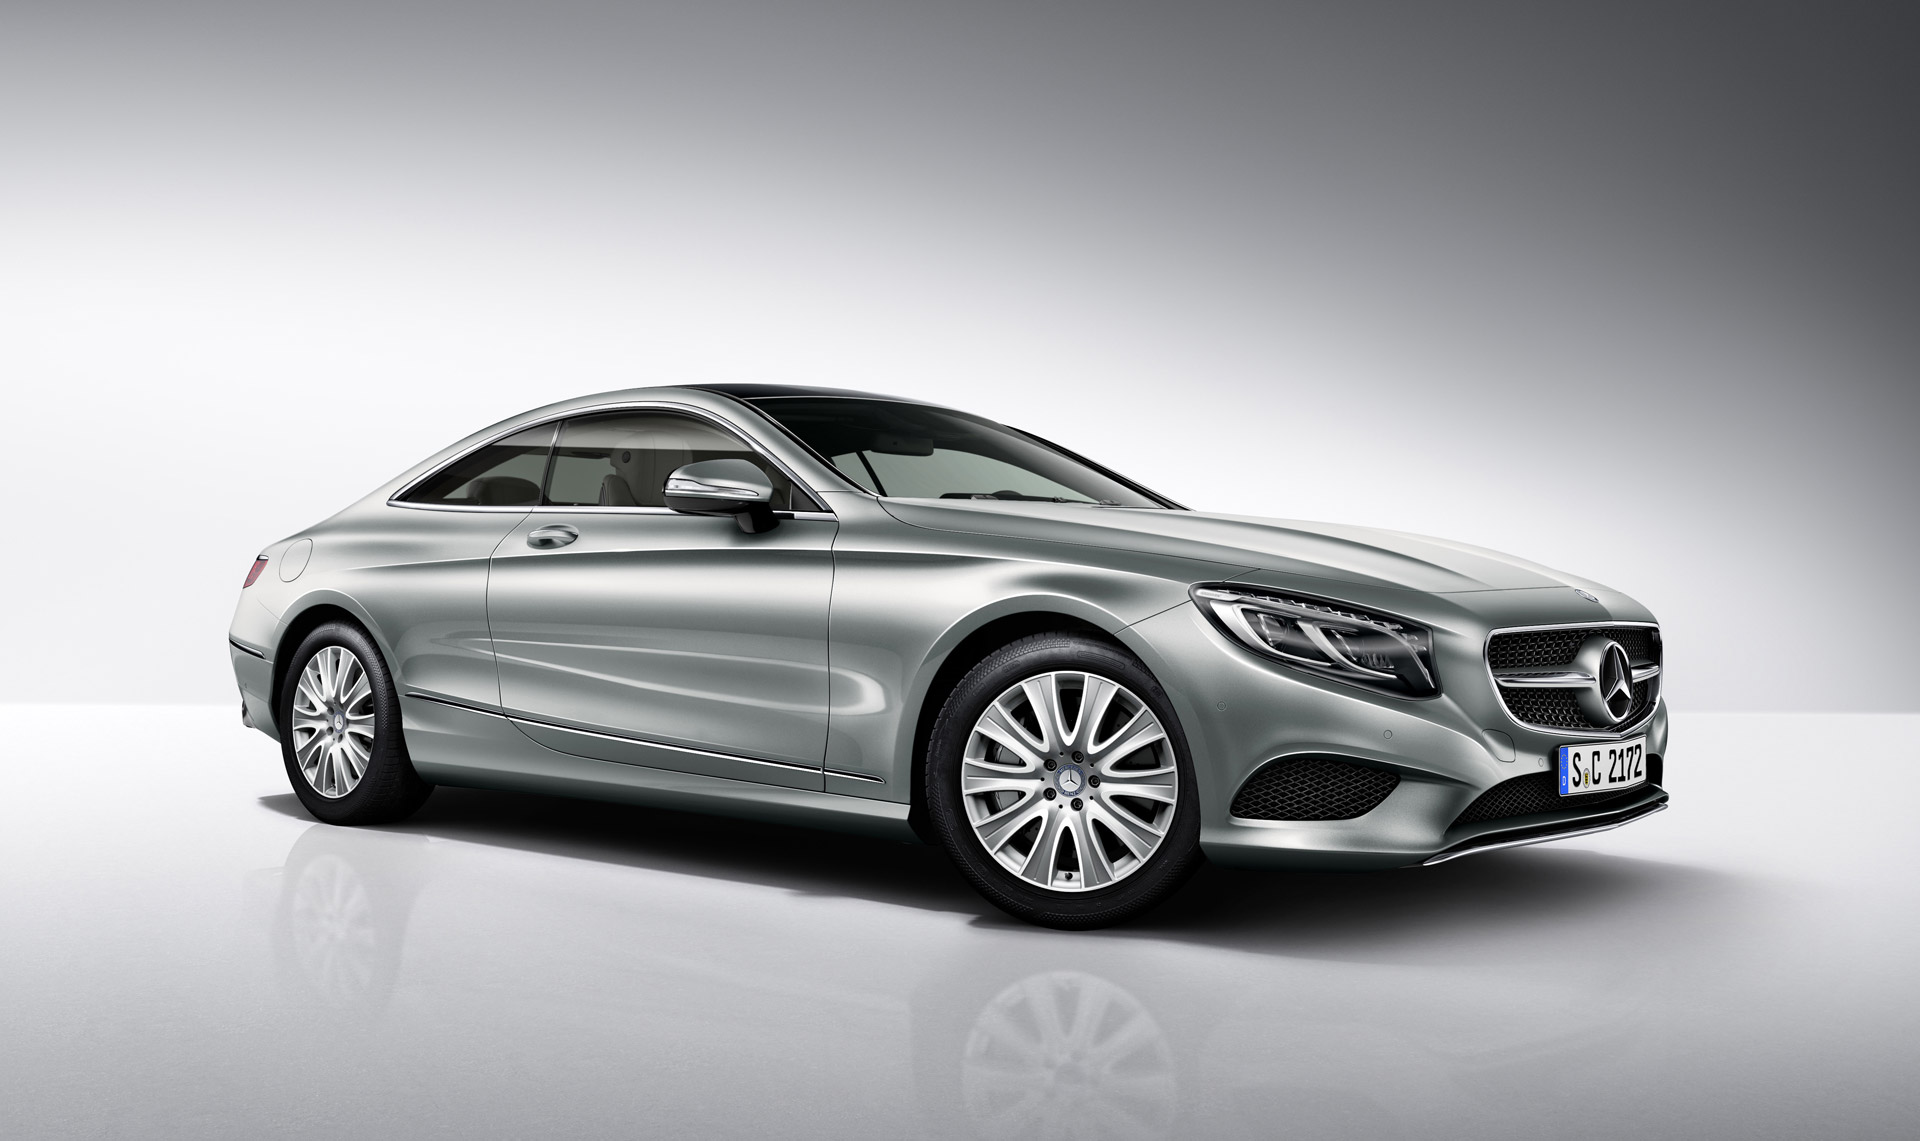 Mercedes benz adds s400 4matic model to s class coupe range for 2017 mercedes benz s